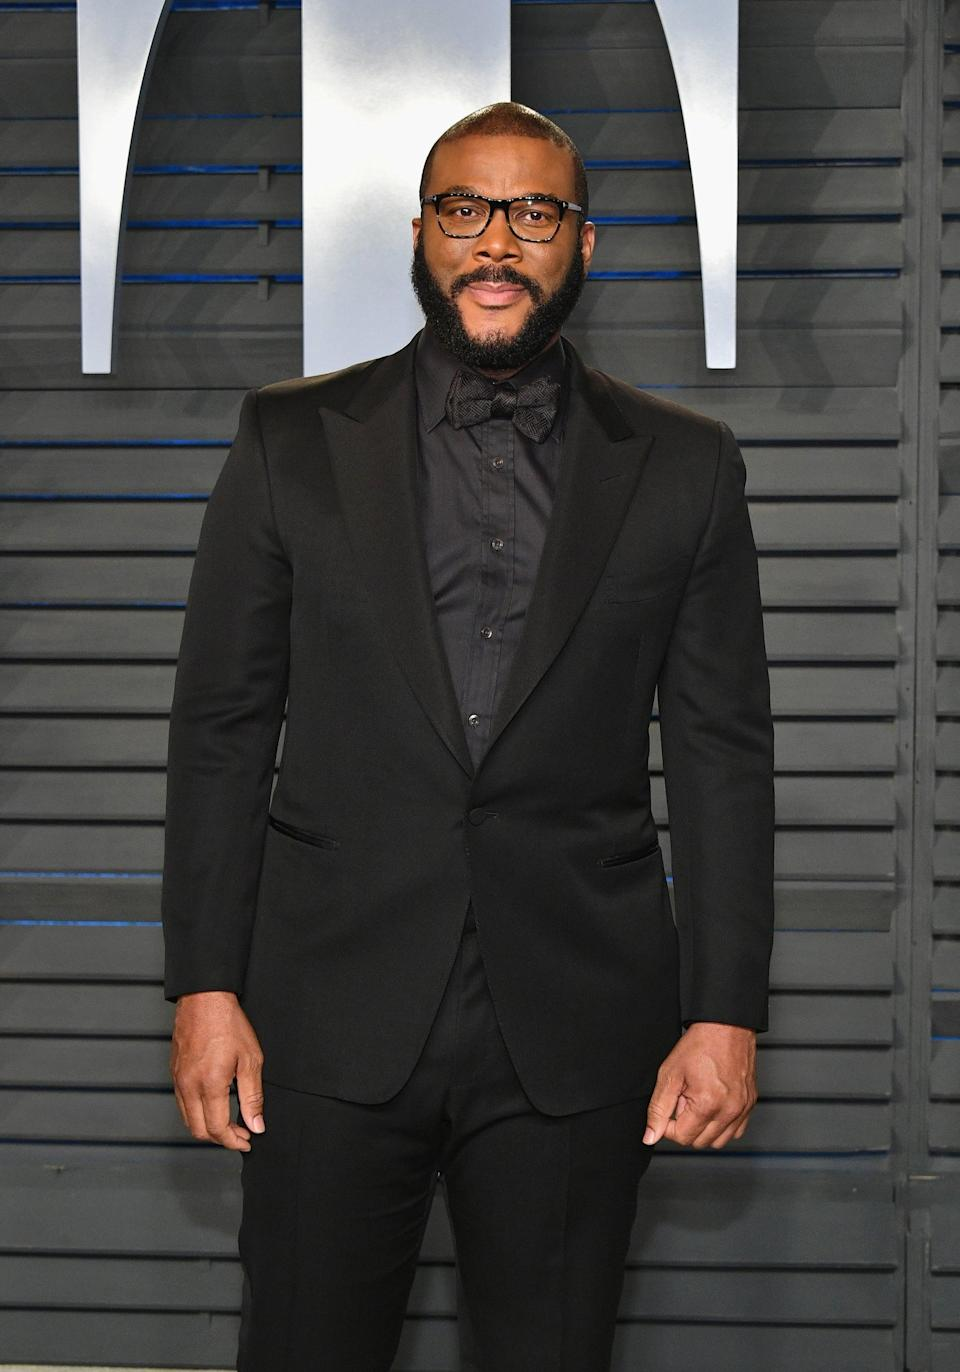 BEVERLY HILLS, CA - MARCH 04: Tyler Perry attends the 2018 Vanity Fair Oscar Party hosted by Radhika Jones at Wallis Annenberg Center for the Performing Arts on March 4, 2018 in Beverly Hills, California.  (Photo by Dia Dipasupil/Getty Images)